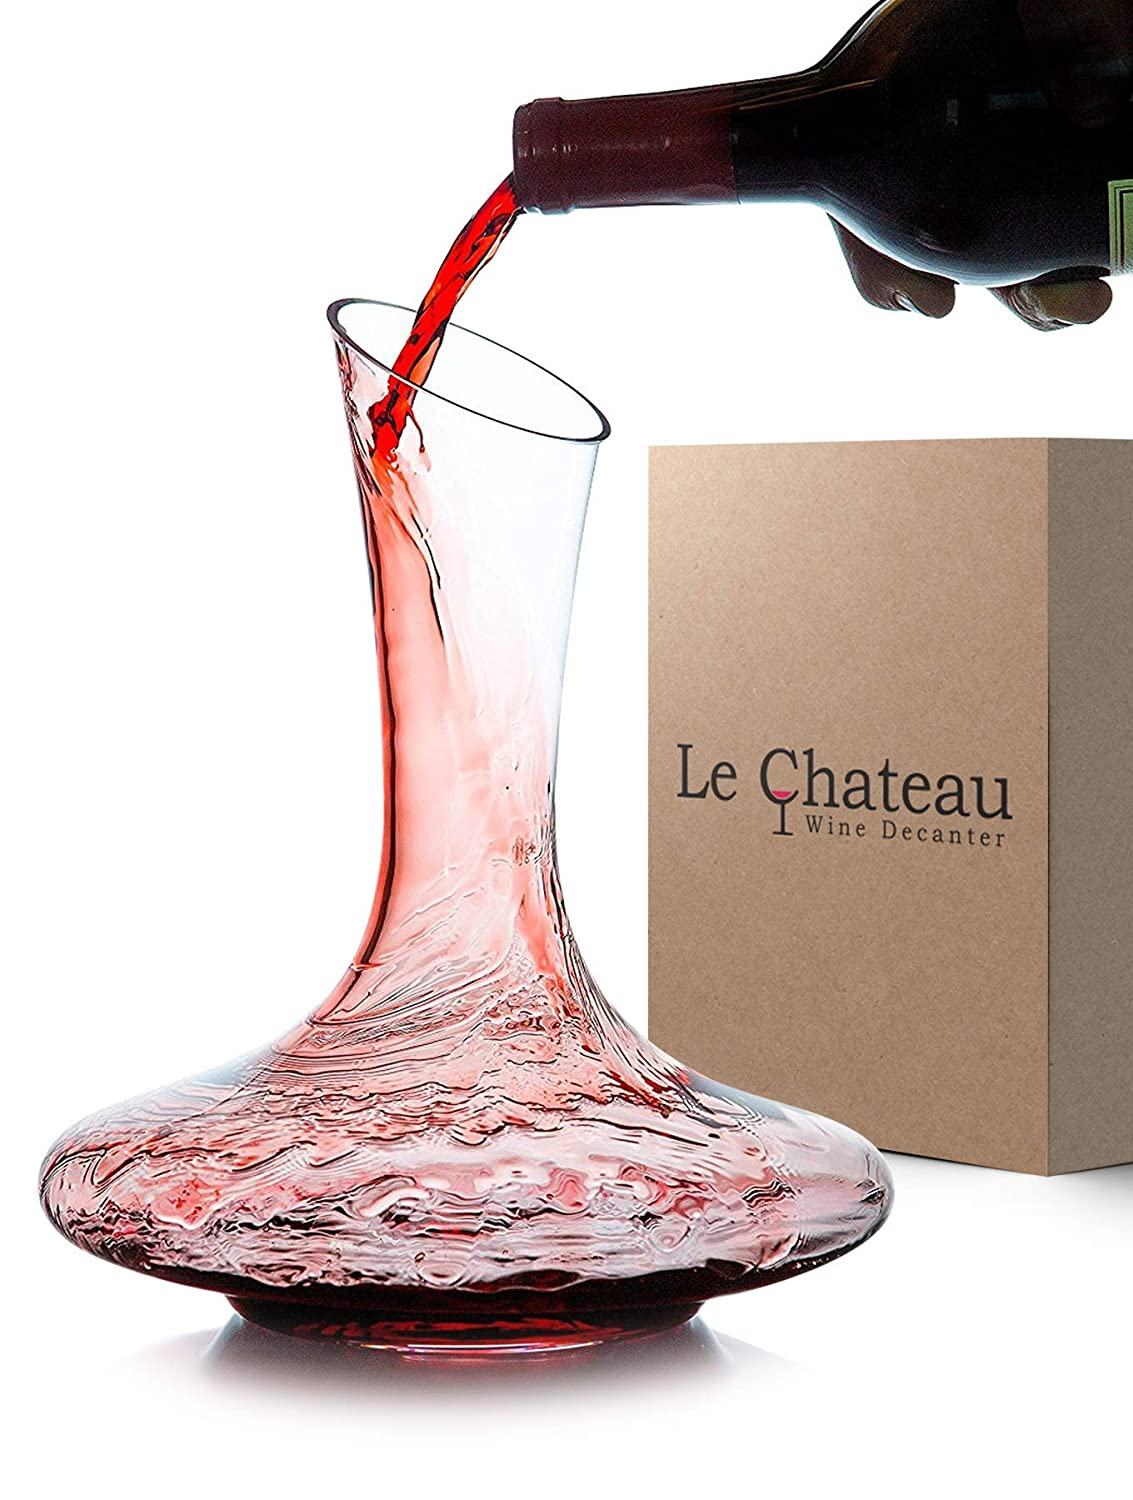 Le Chateau Wine Decanter - 100% Hand Blown Lead-free Crystal Glass, Red Wine Carafe, Wine Gift, Wine Accessories SYNCHKG083779